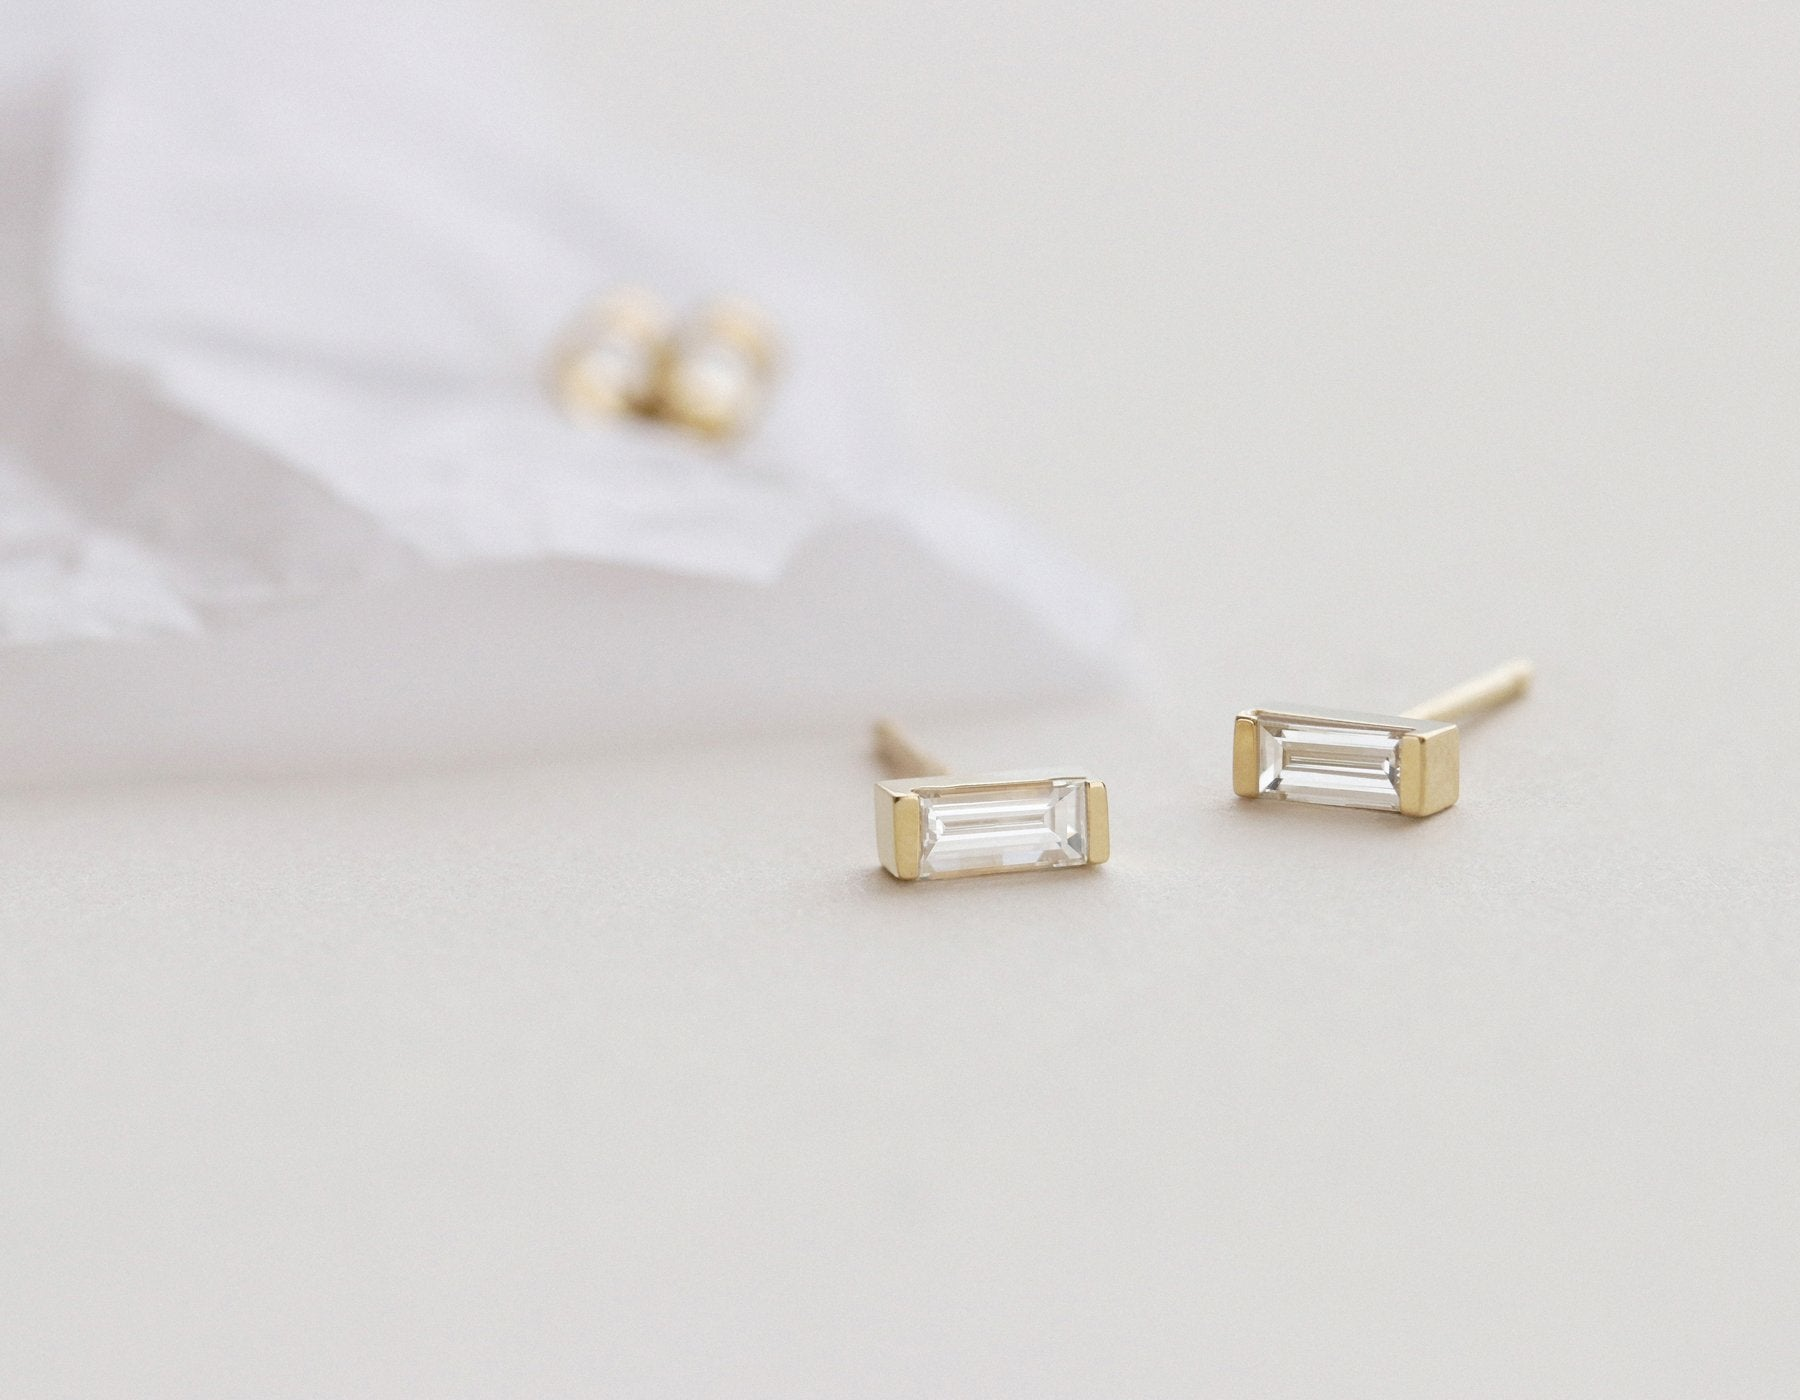 makri in mak product designers ray baguette gold diamond triple zoom ileana earrings